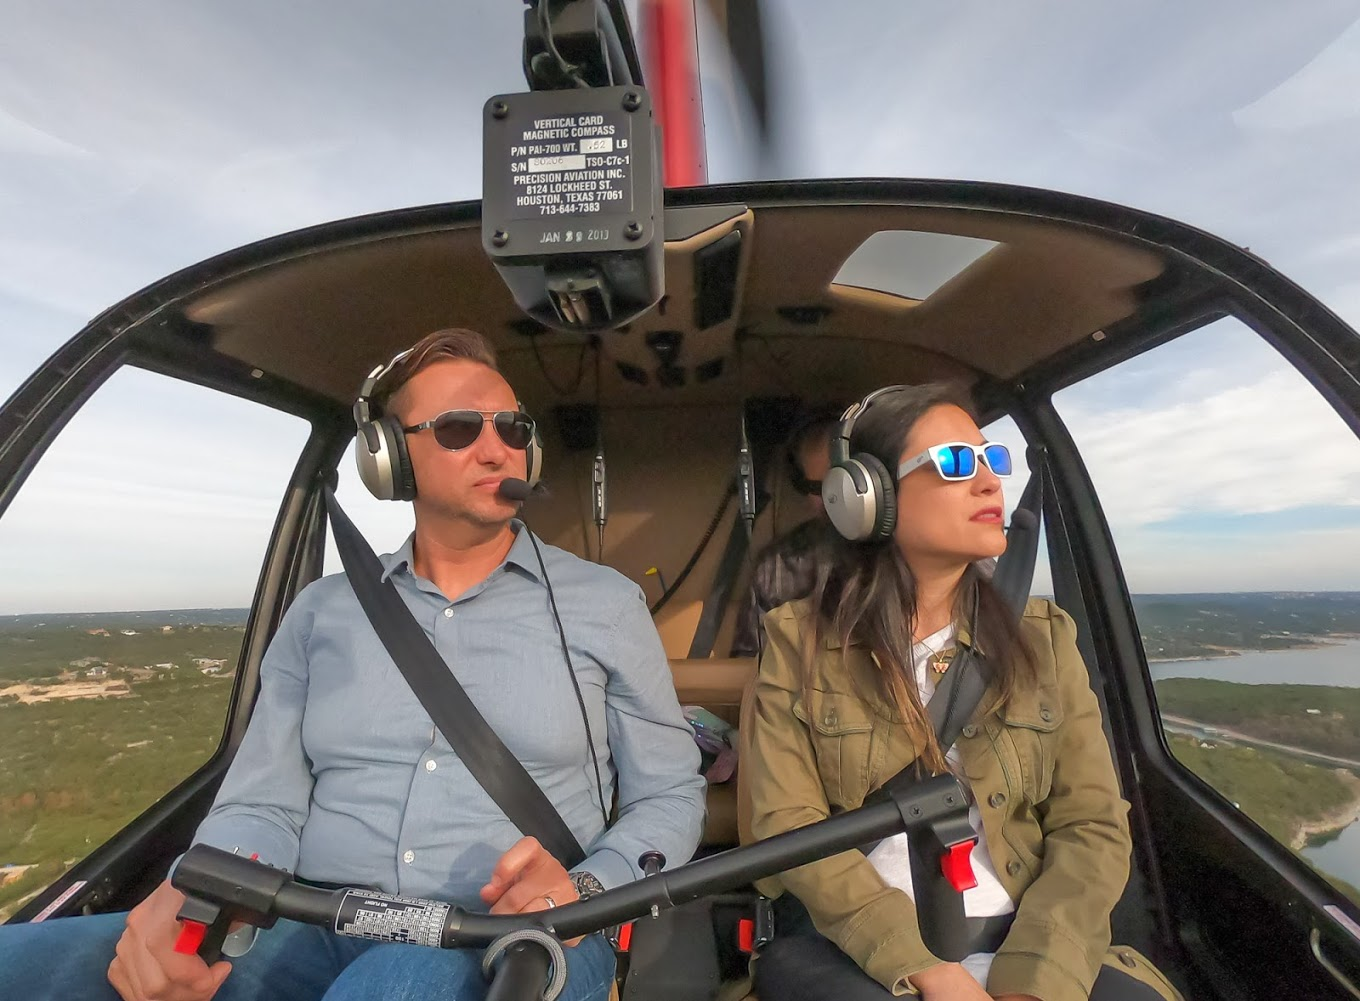 Two helicopters pilots wearing sunglasses and headsets looking out the windows